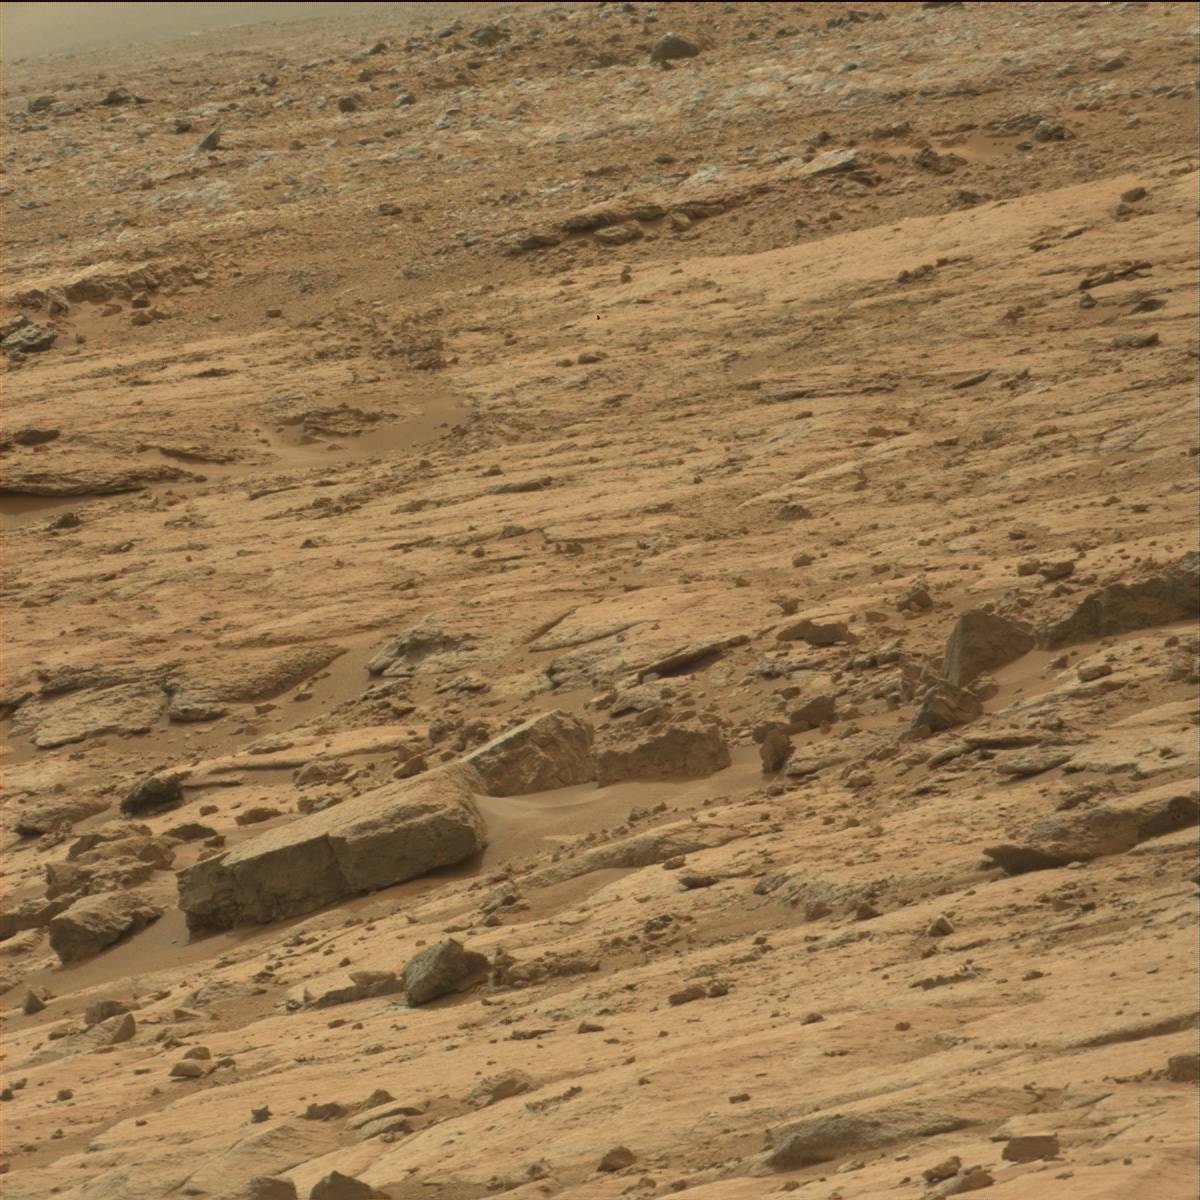 nasa finds tablets on mars - photo #35